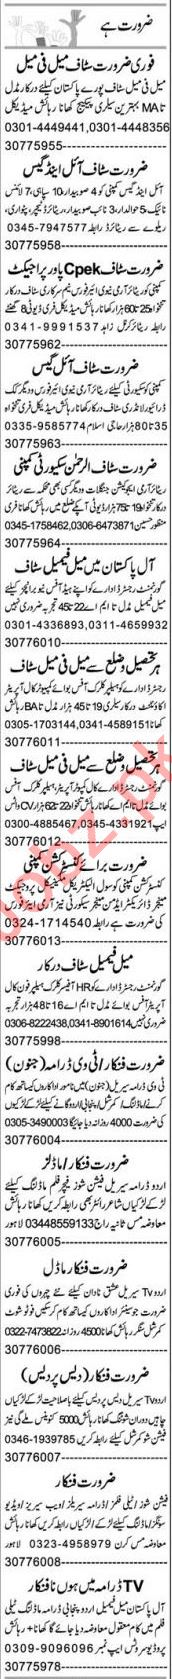 Client Relation Officer & Purchase Assistant Jobs 2021